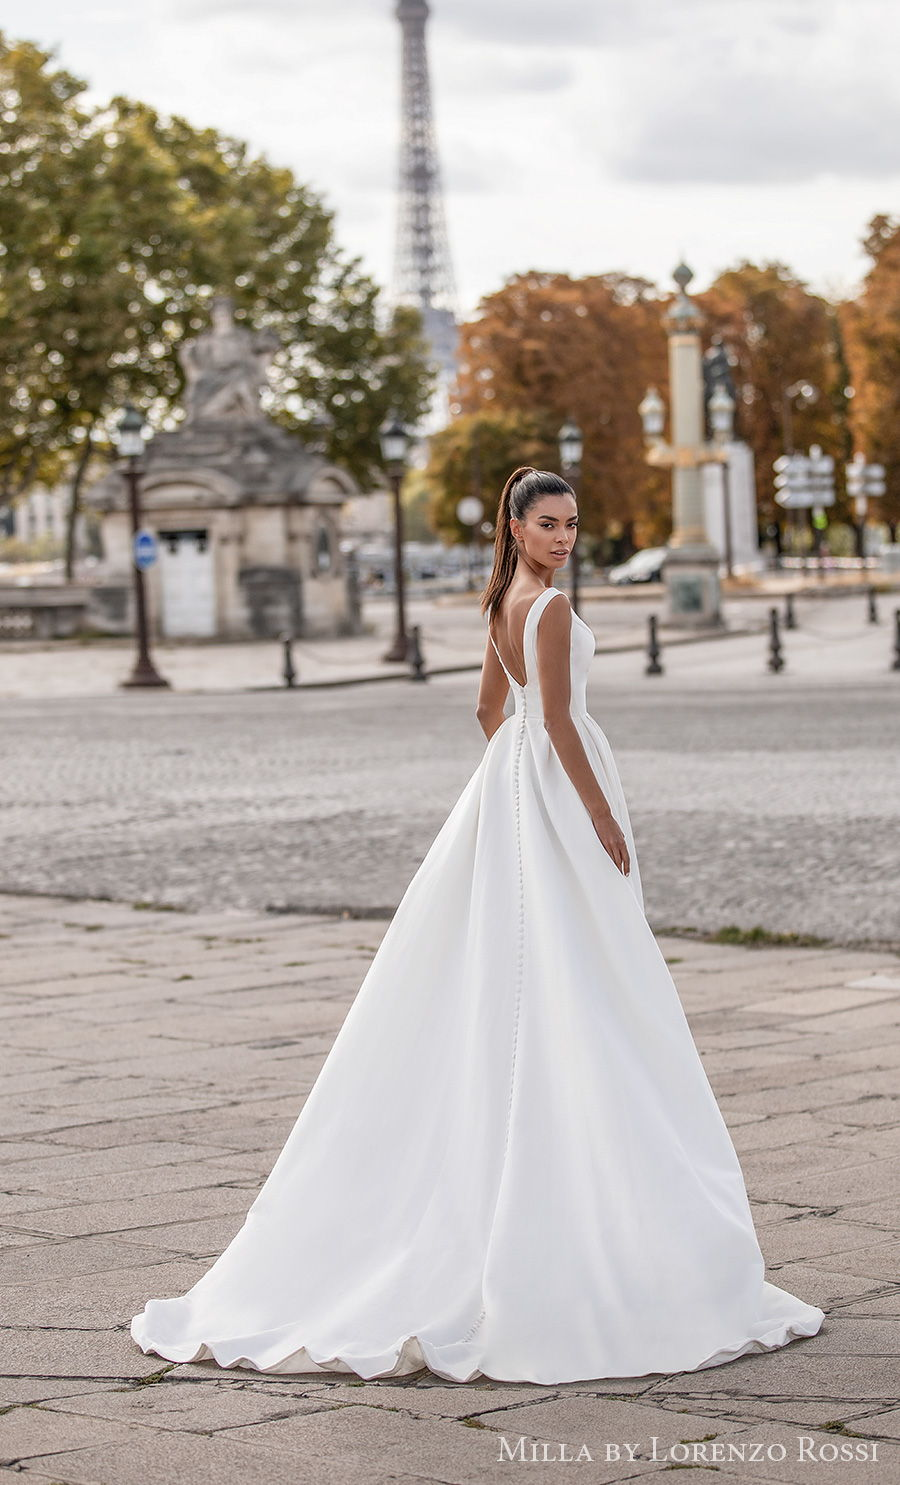 milla lorenzo rossi 2021 bridal sleeveless bateau neckline simple minimalist elegant princess a  line wedding dress backless sweep train (travis) bv